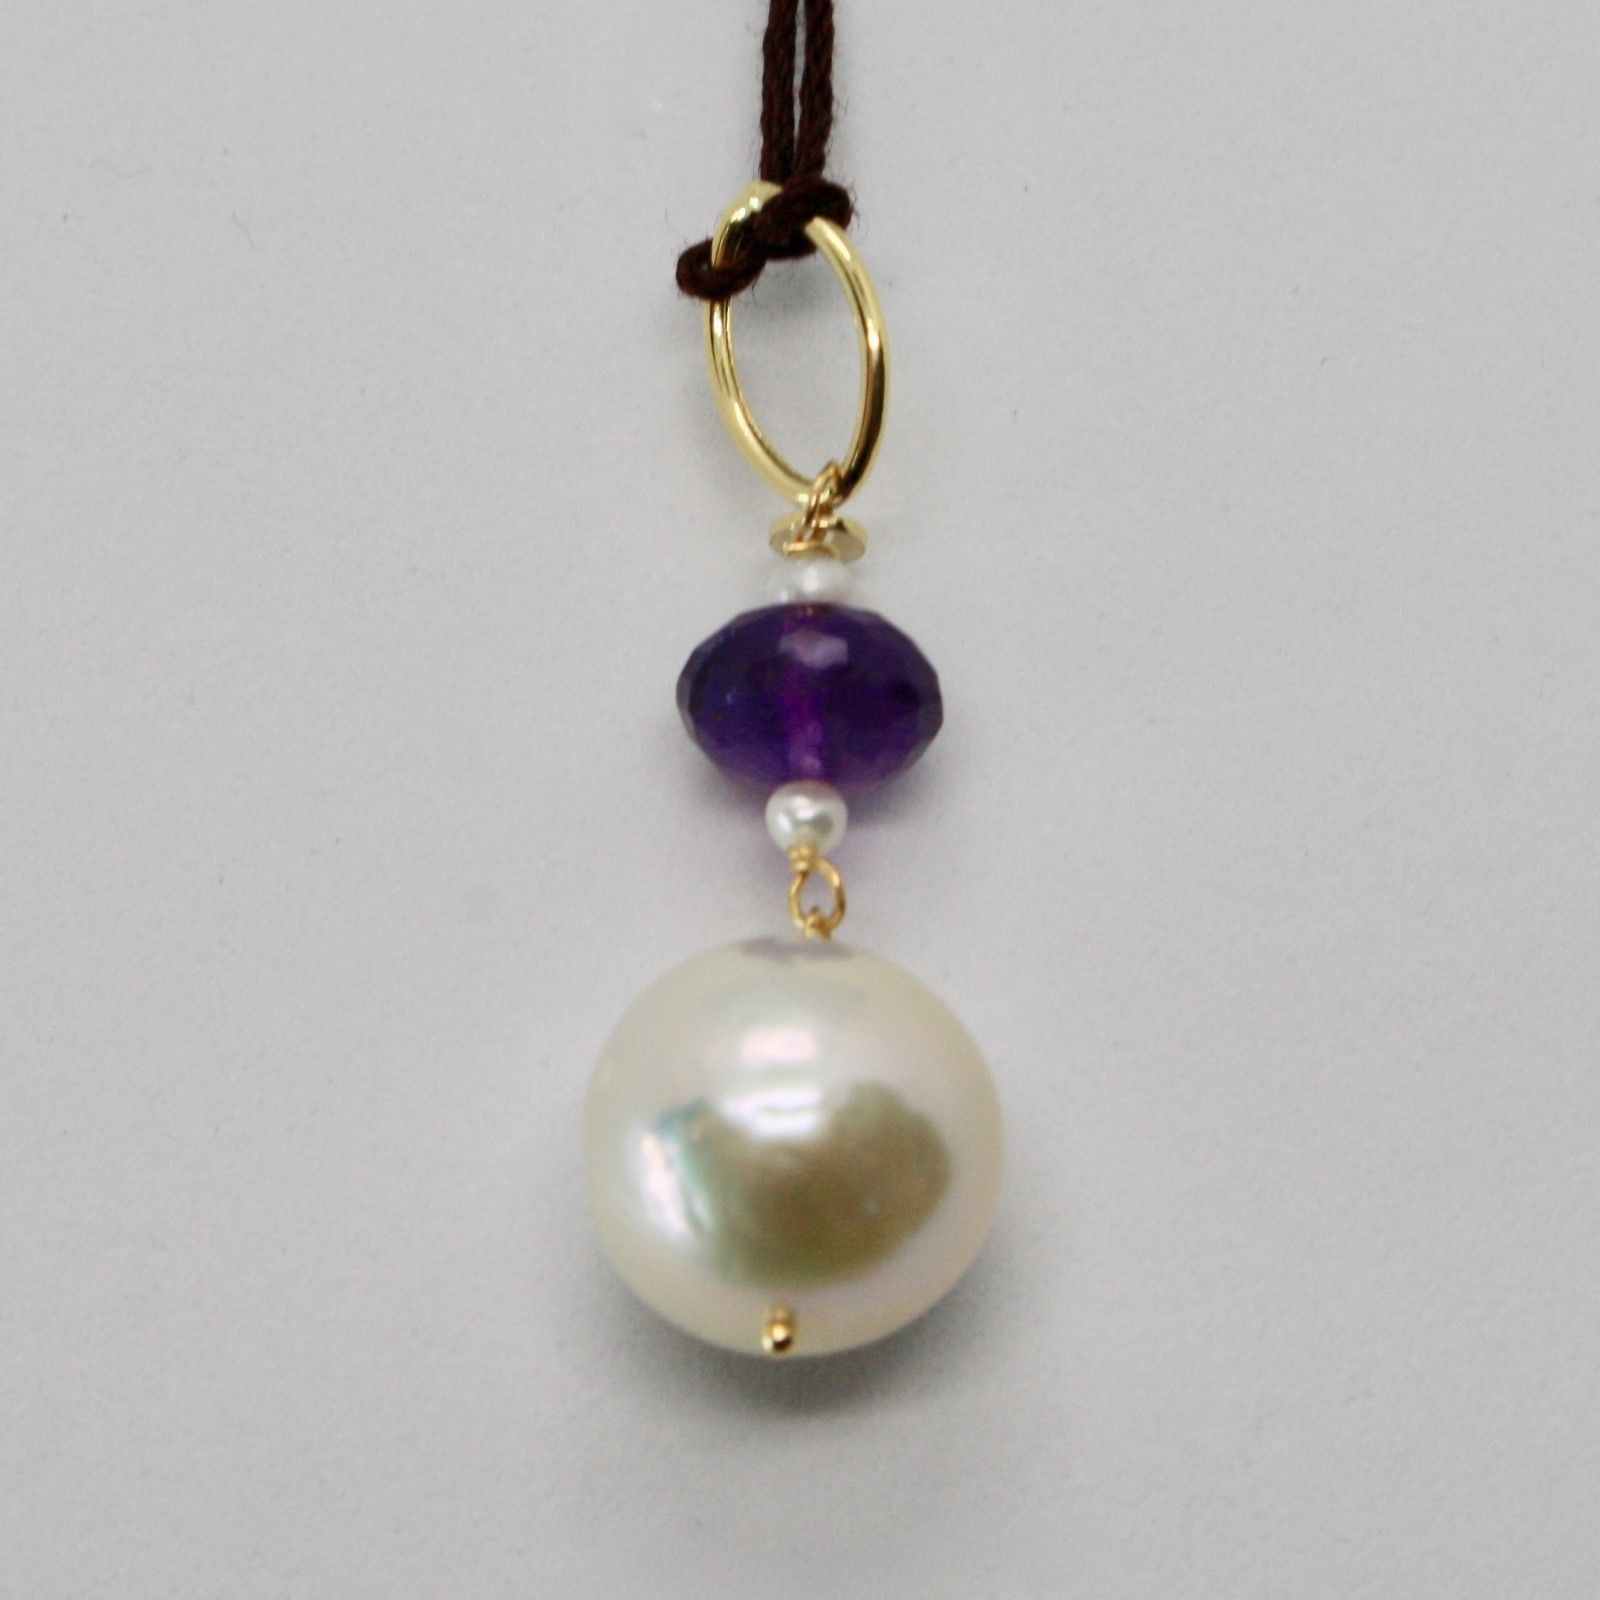 PENDANT YELLOW GOLD 18KT 750 WITH PEARL WHITE OF WATER DOLCE AND AMETHYST PURPLE